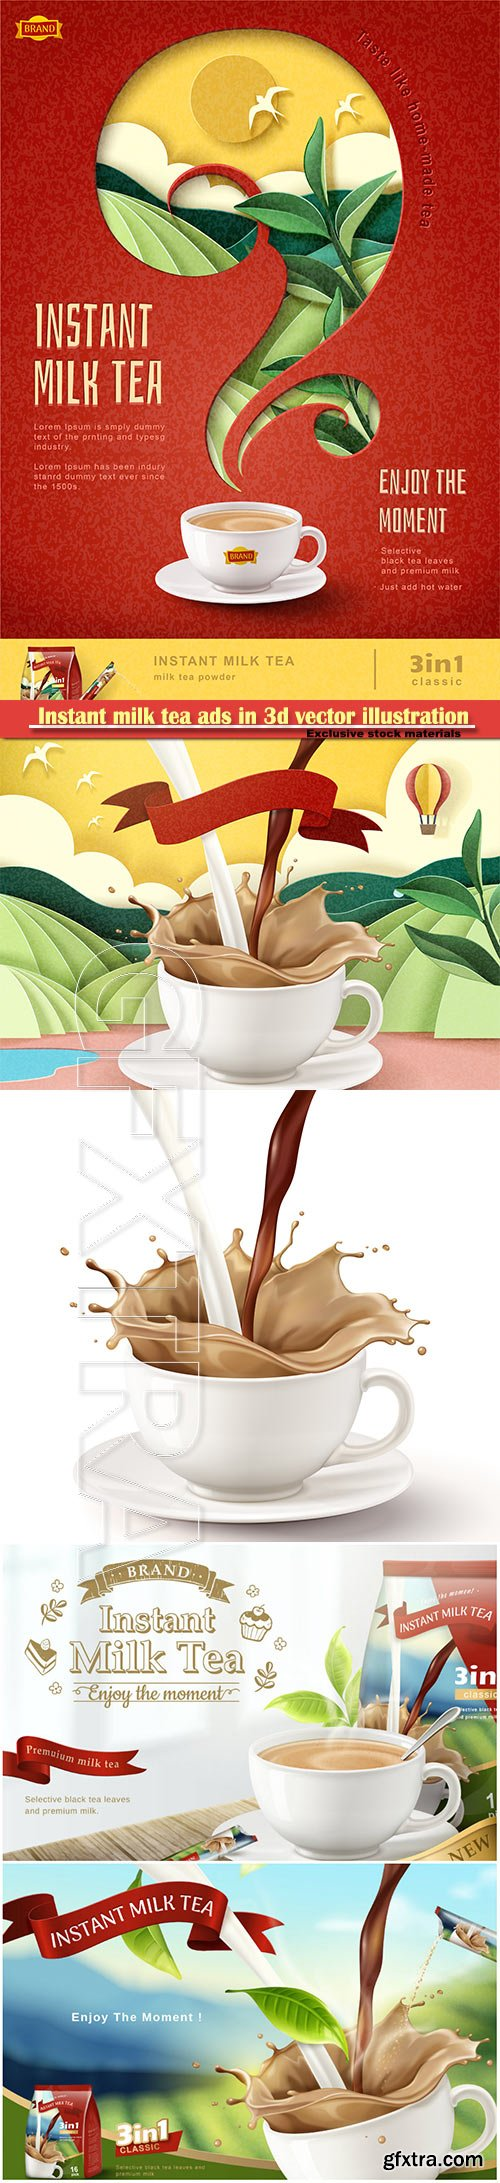 Instant milk tea ads in 3d vector illustration